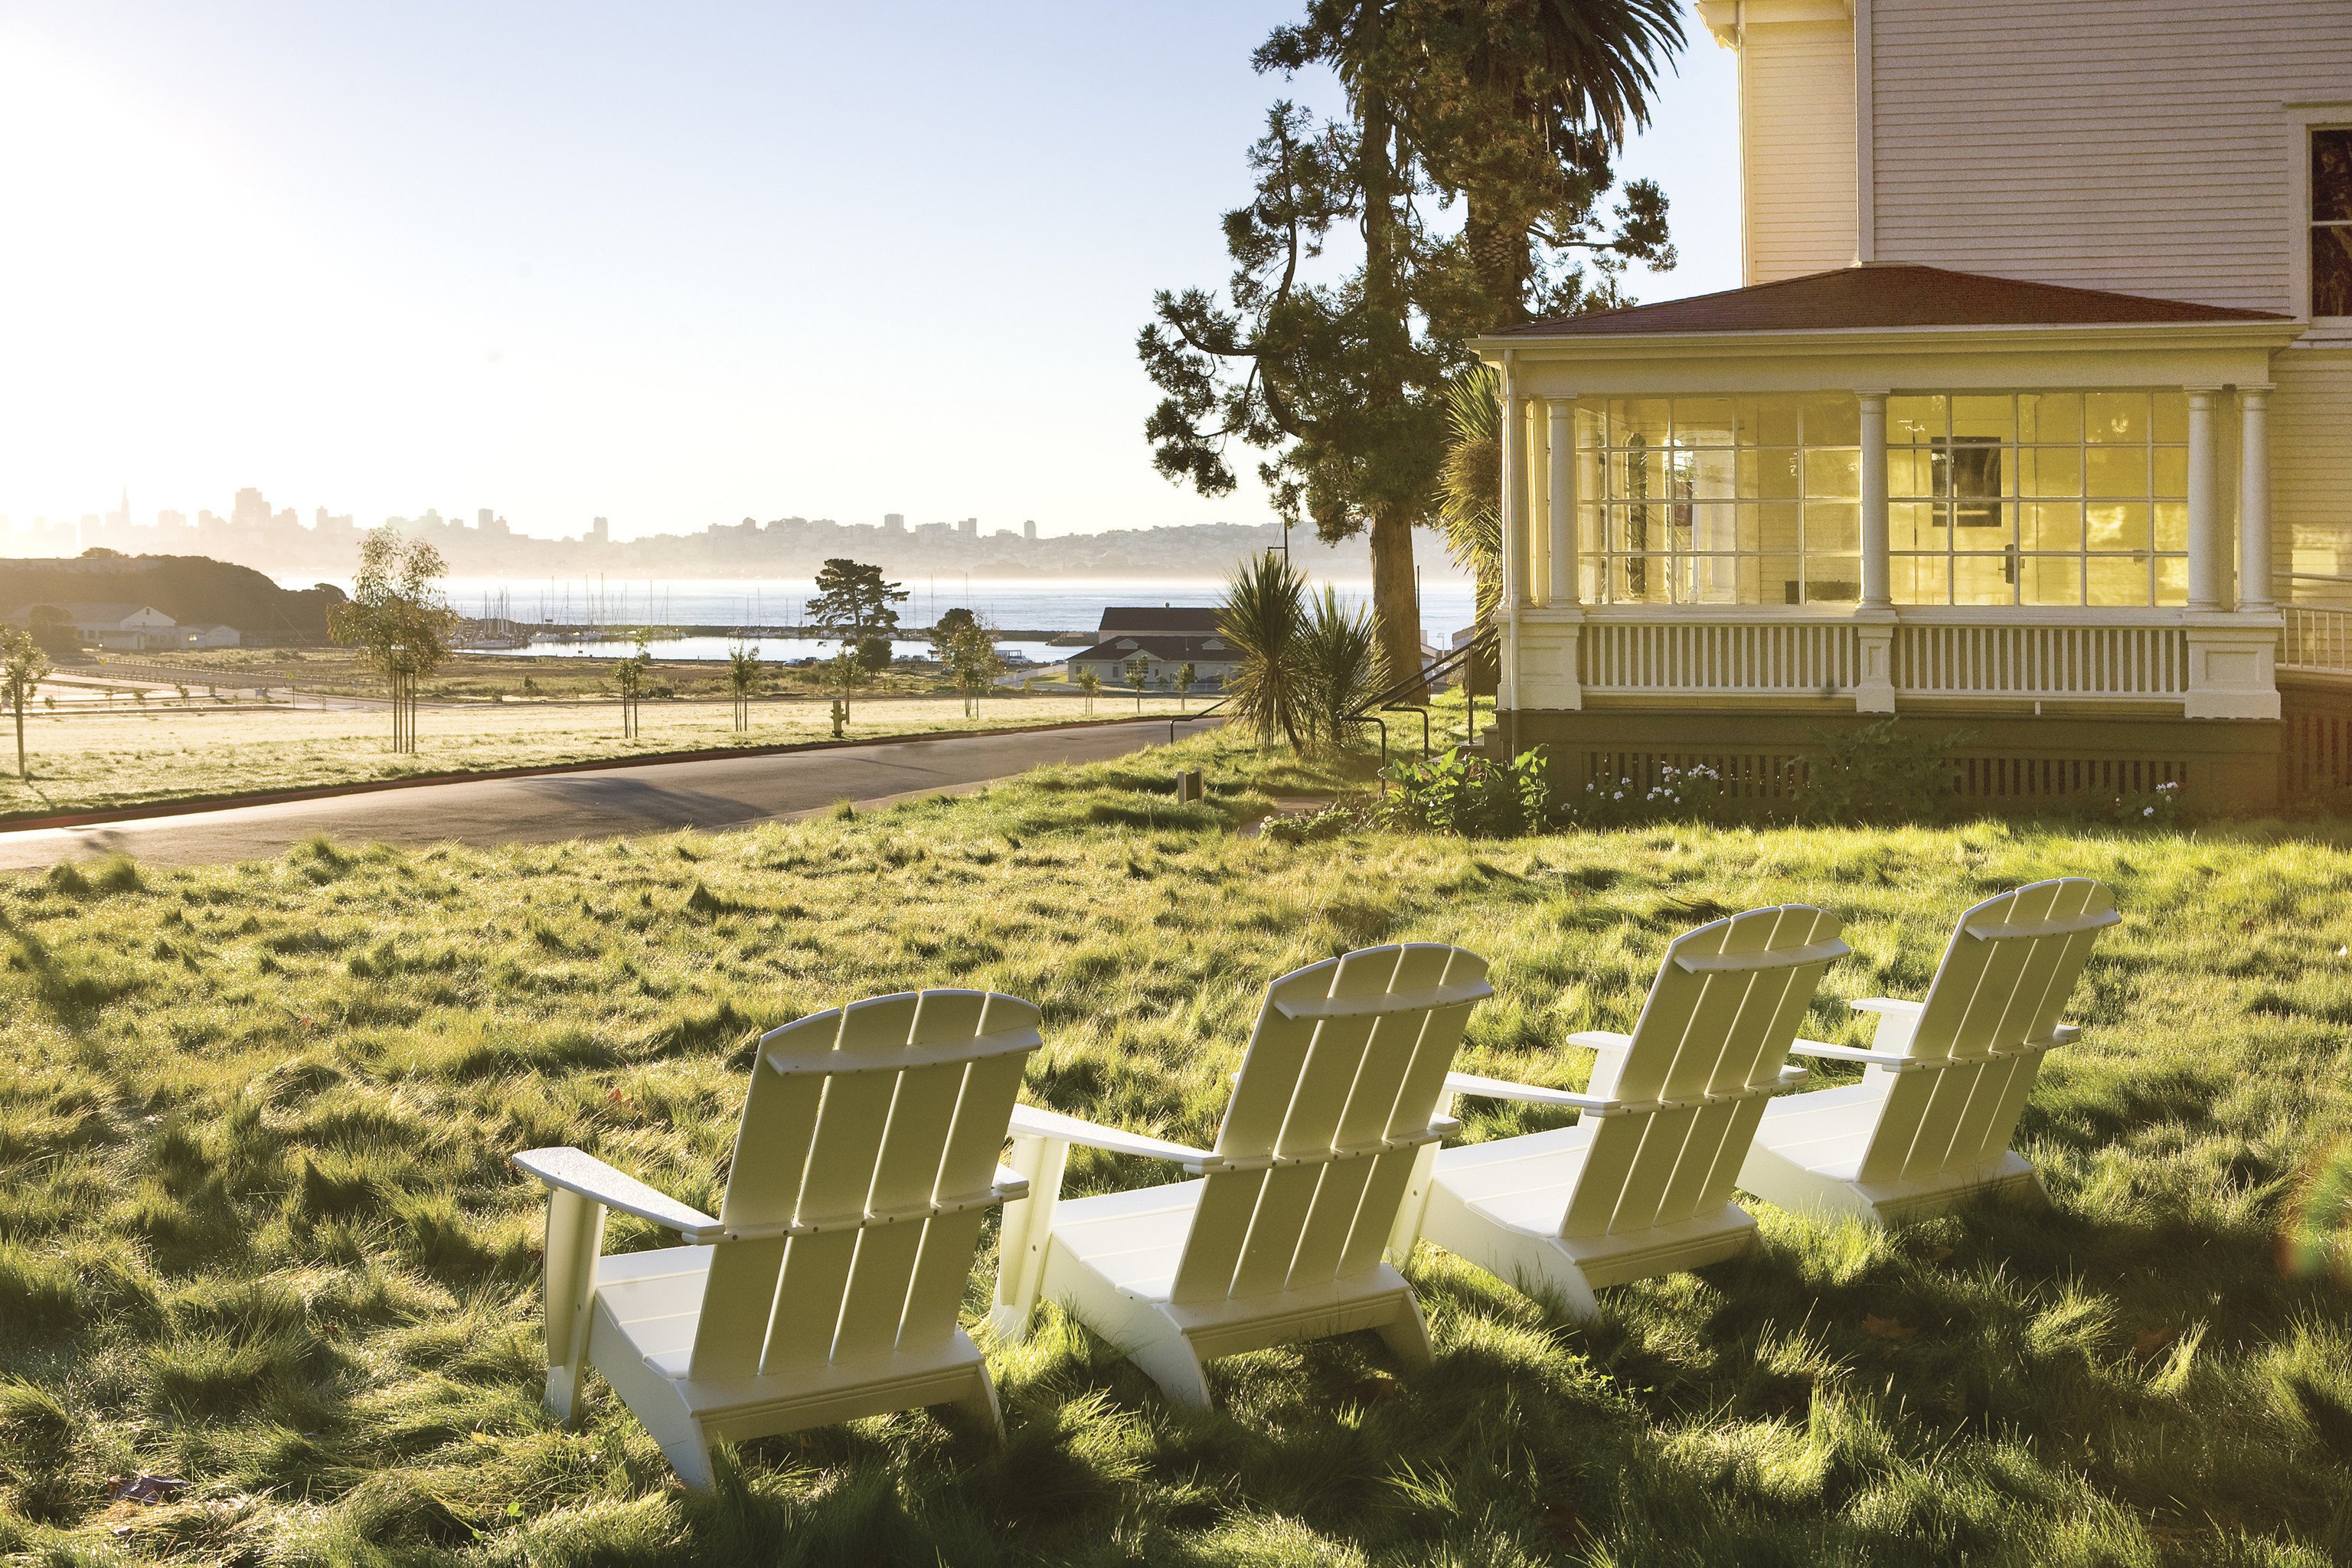 grass bench sky chair lawn tree residential area house home park suburb backyard yard outdoor structure overlooking Deck